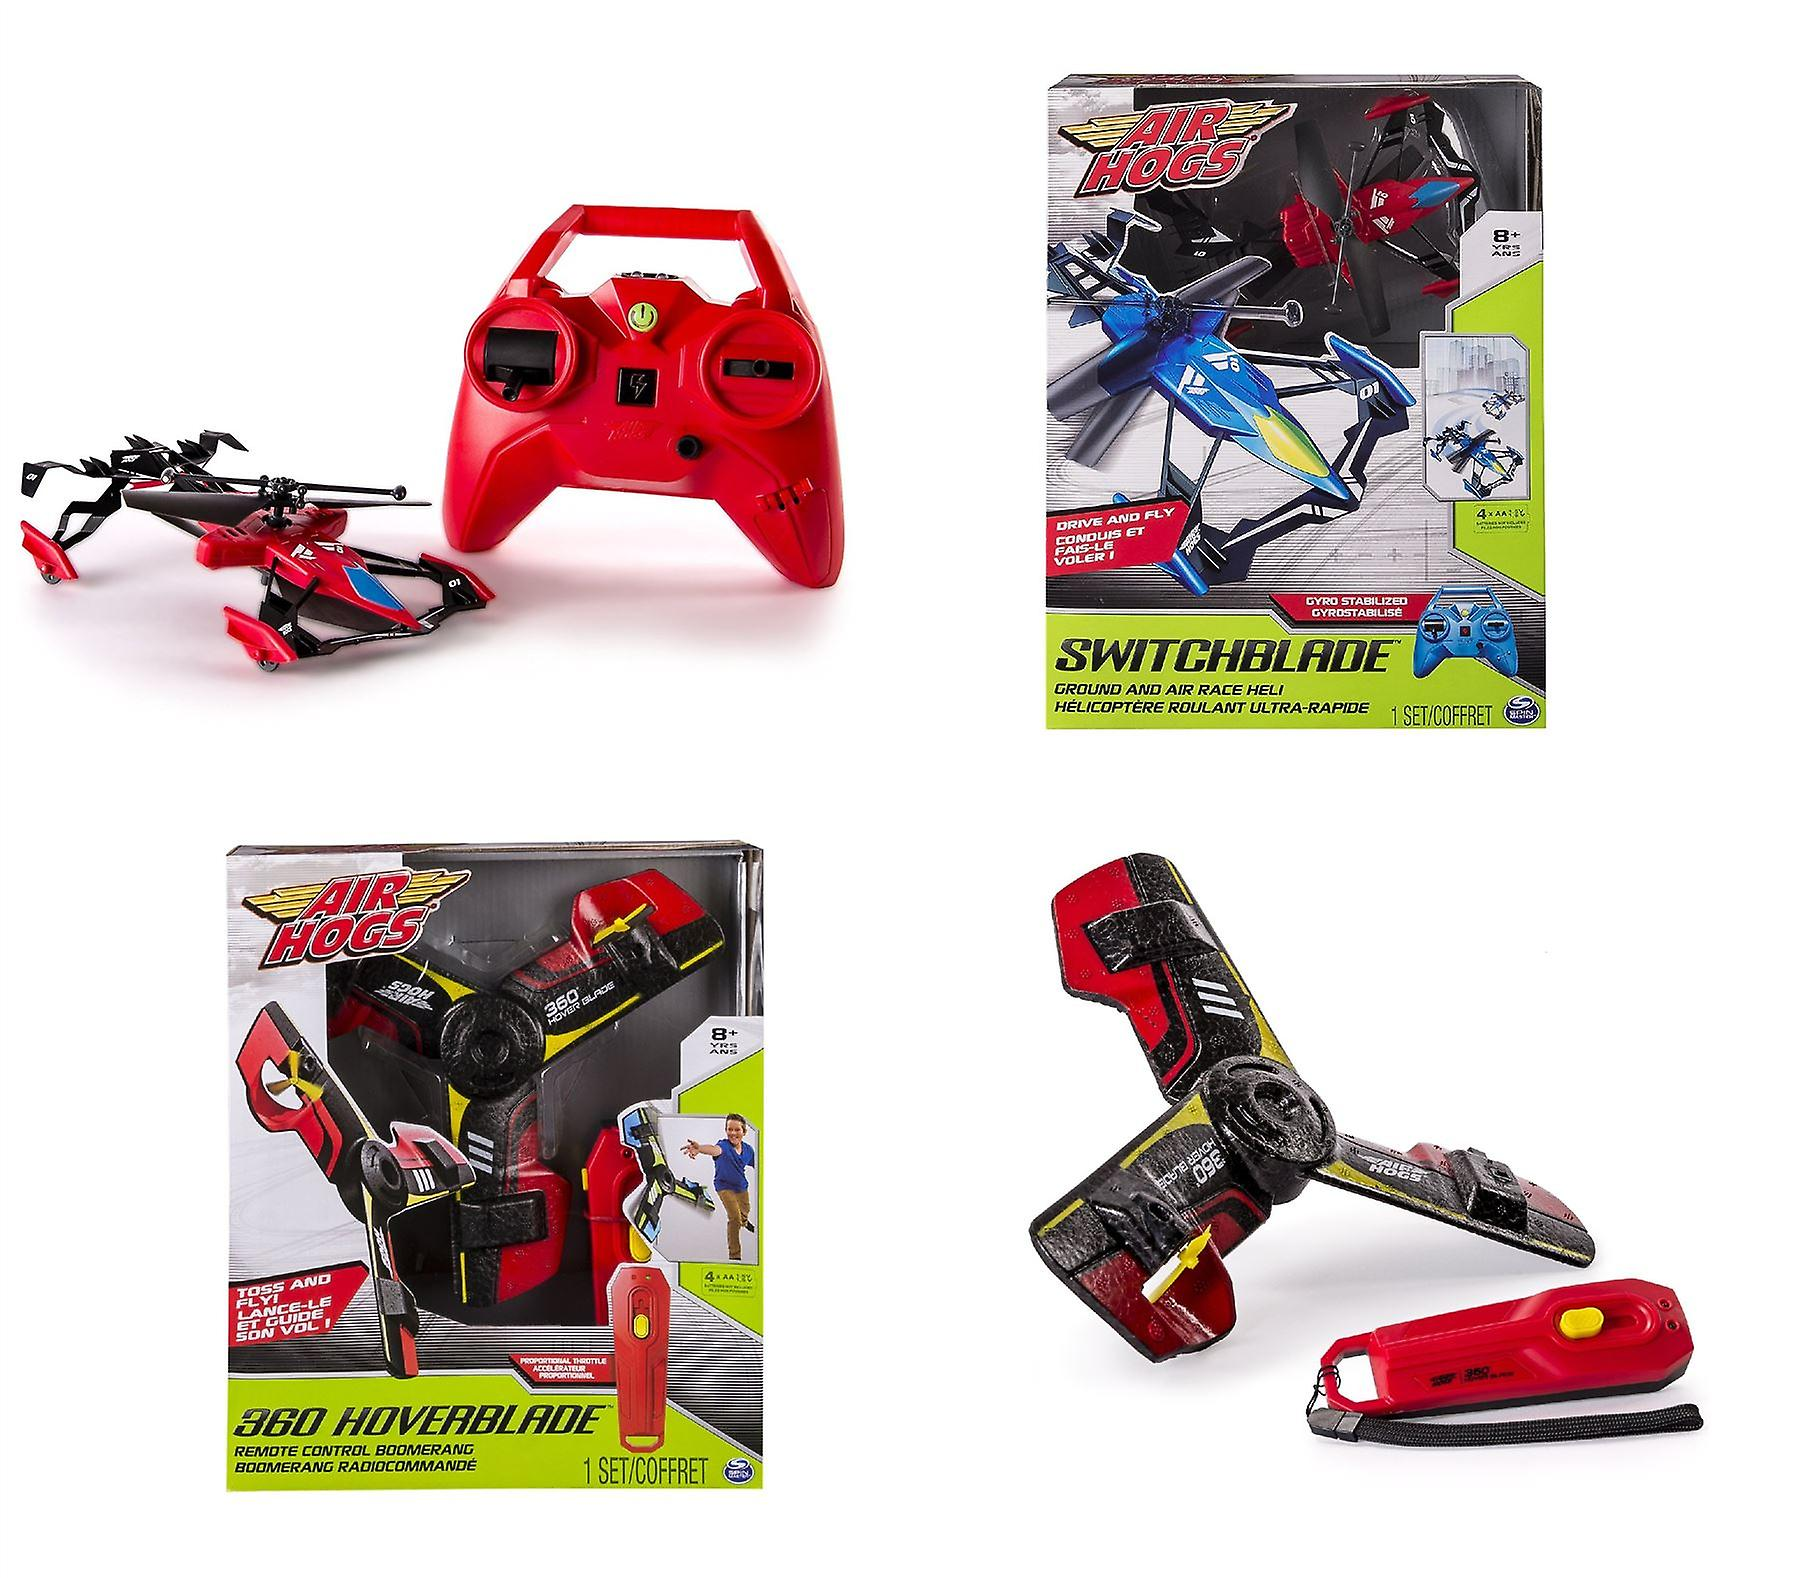 Spin Master Bundle Air Hogs Switchblade & Air Hogs 360 Hoverblade Boomerang 2 Oggetti